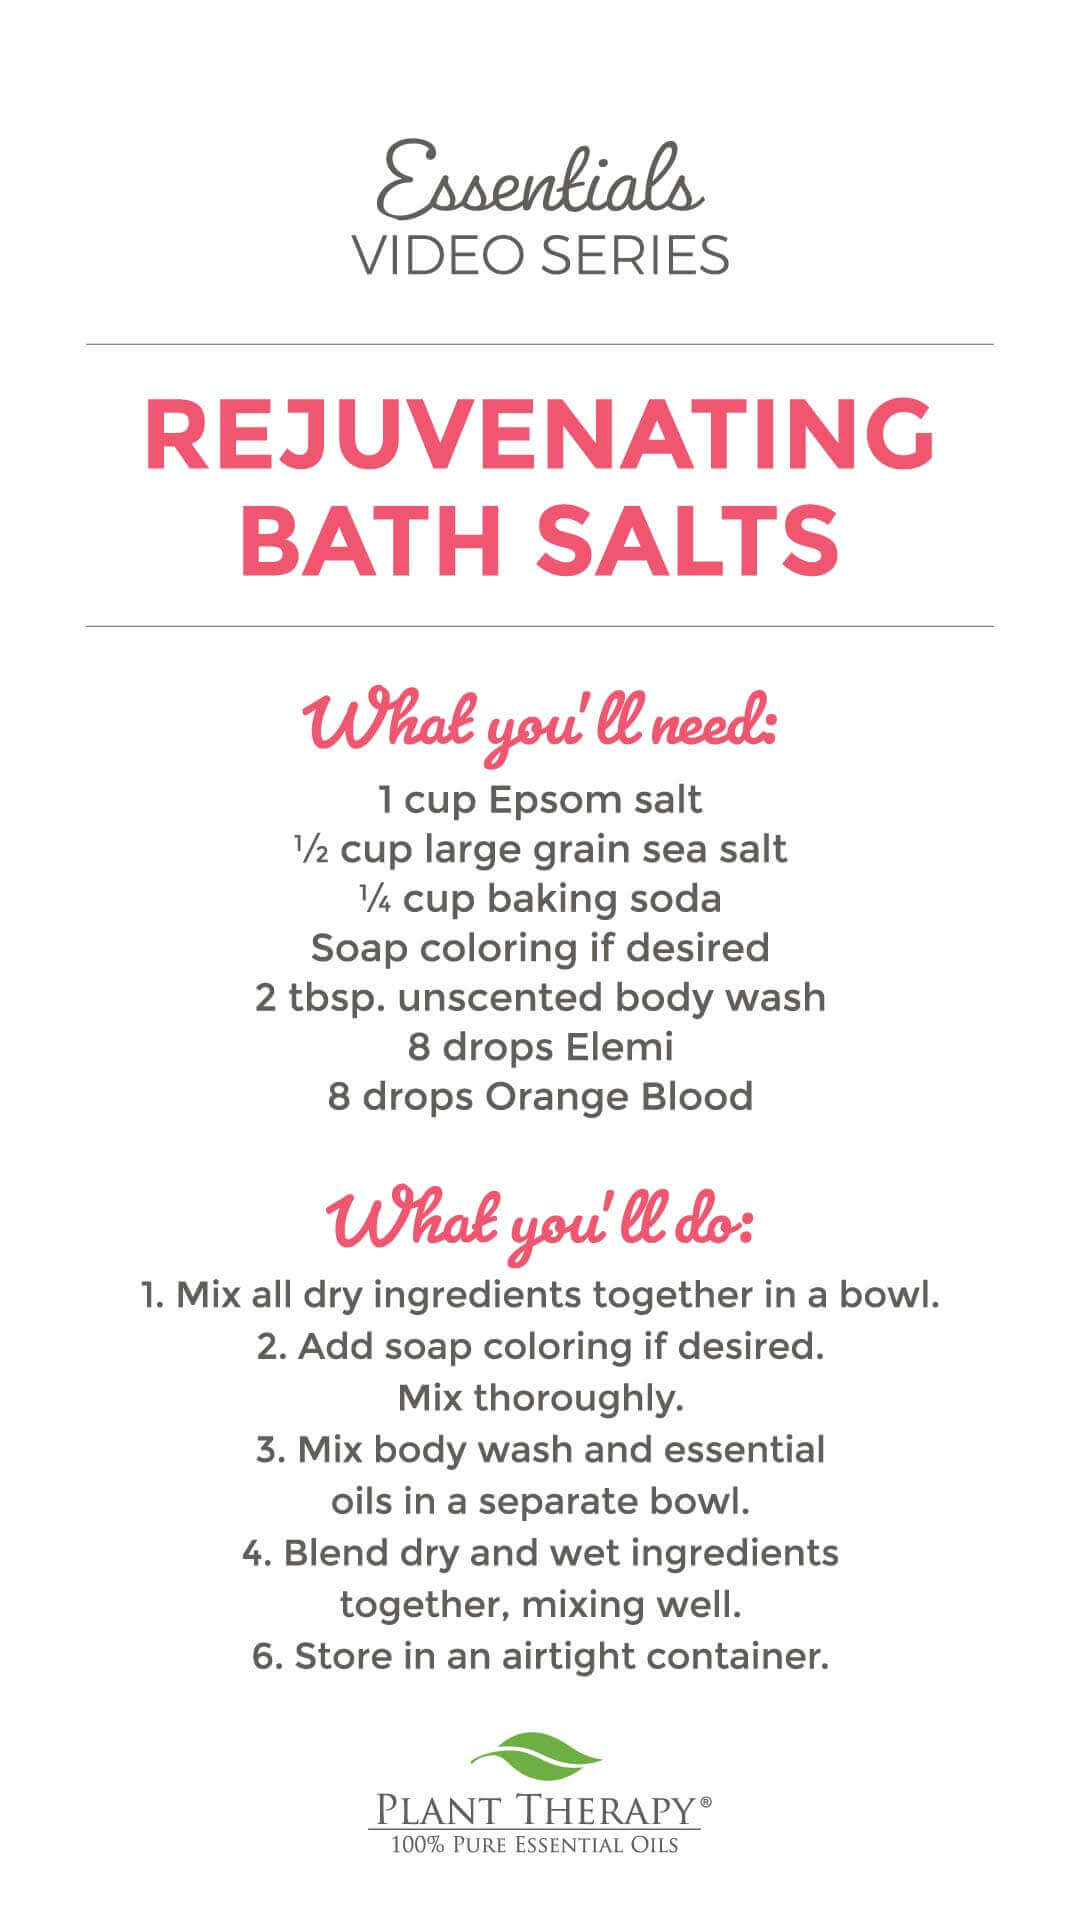 essentials video rejuvenating bath salts